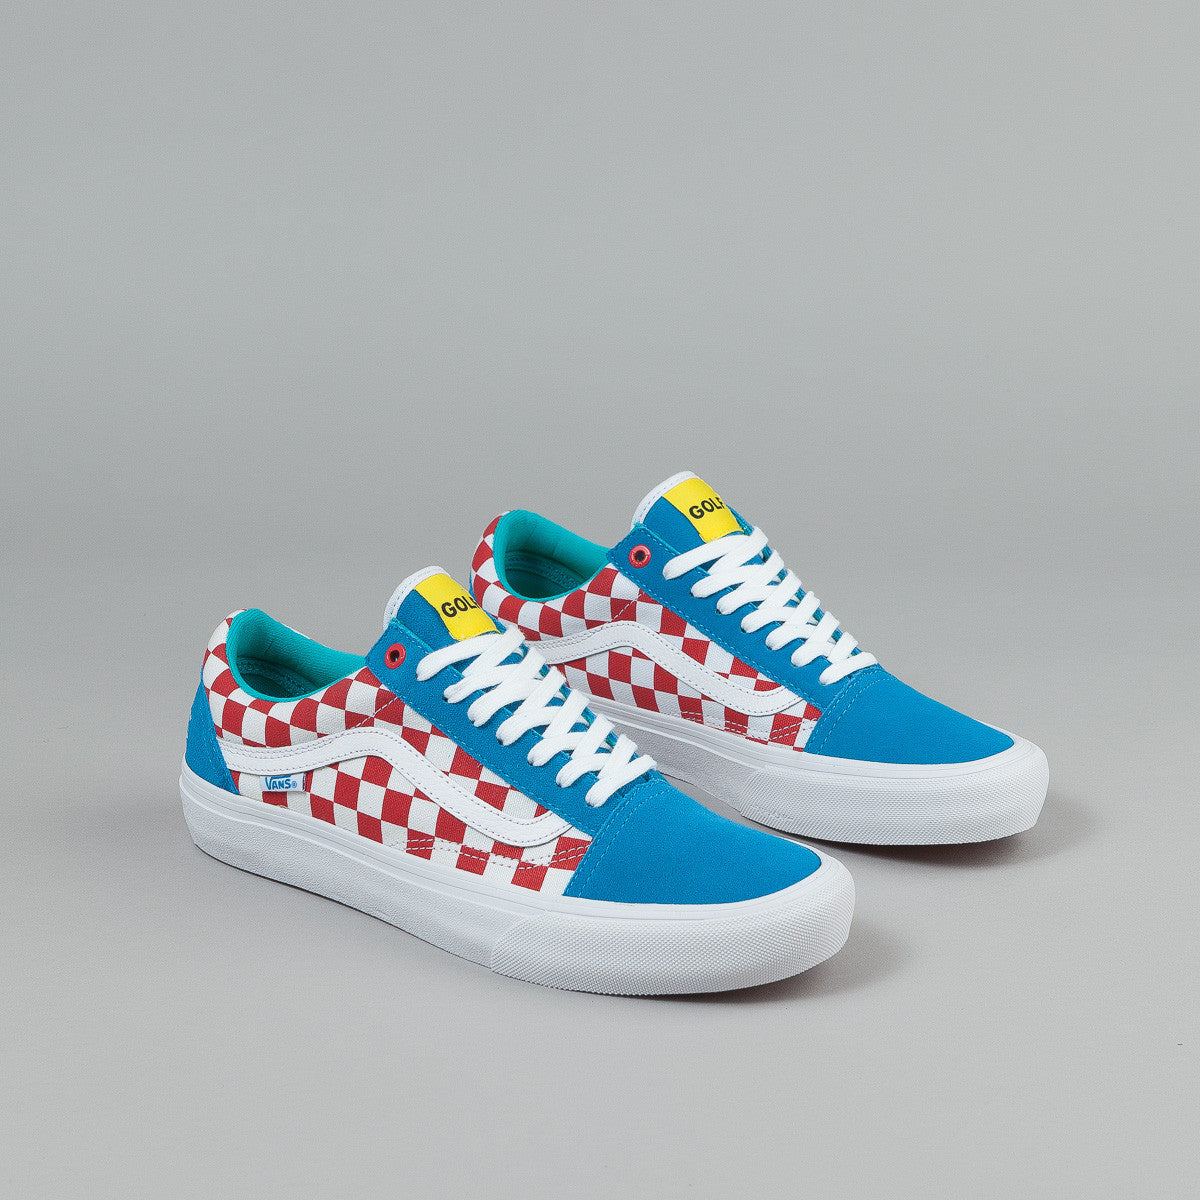 vans old skool pro shoes golf wang blue red white. Black Bedroom Furniture Sets. Home Design Ideas